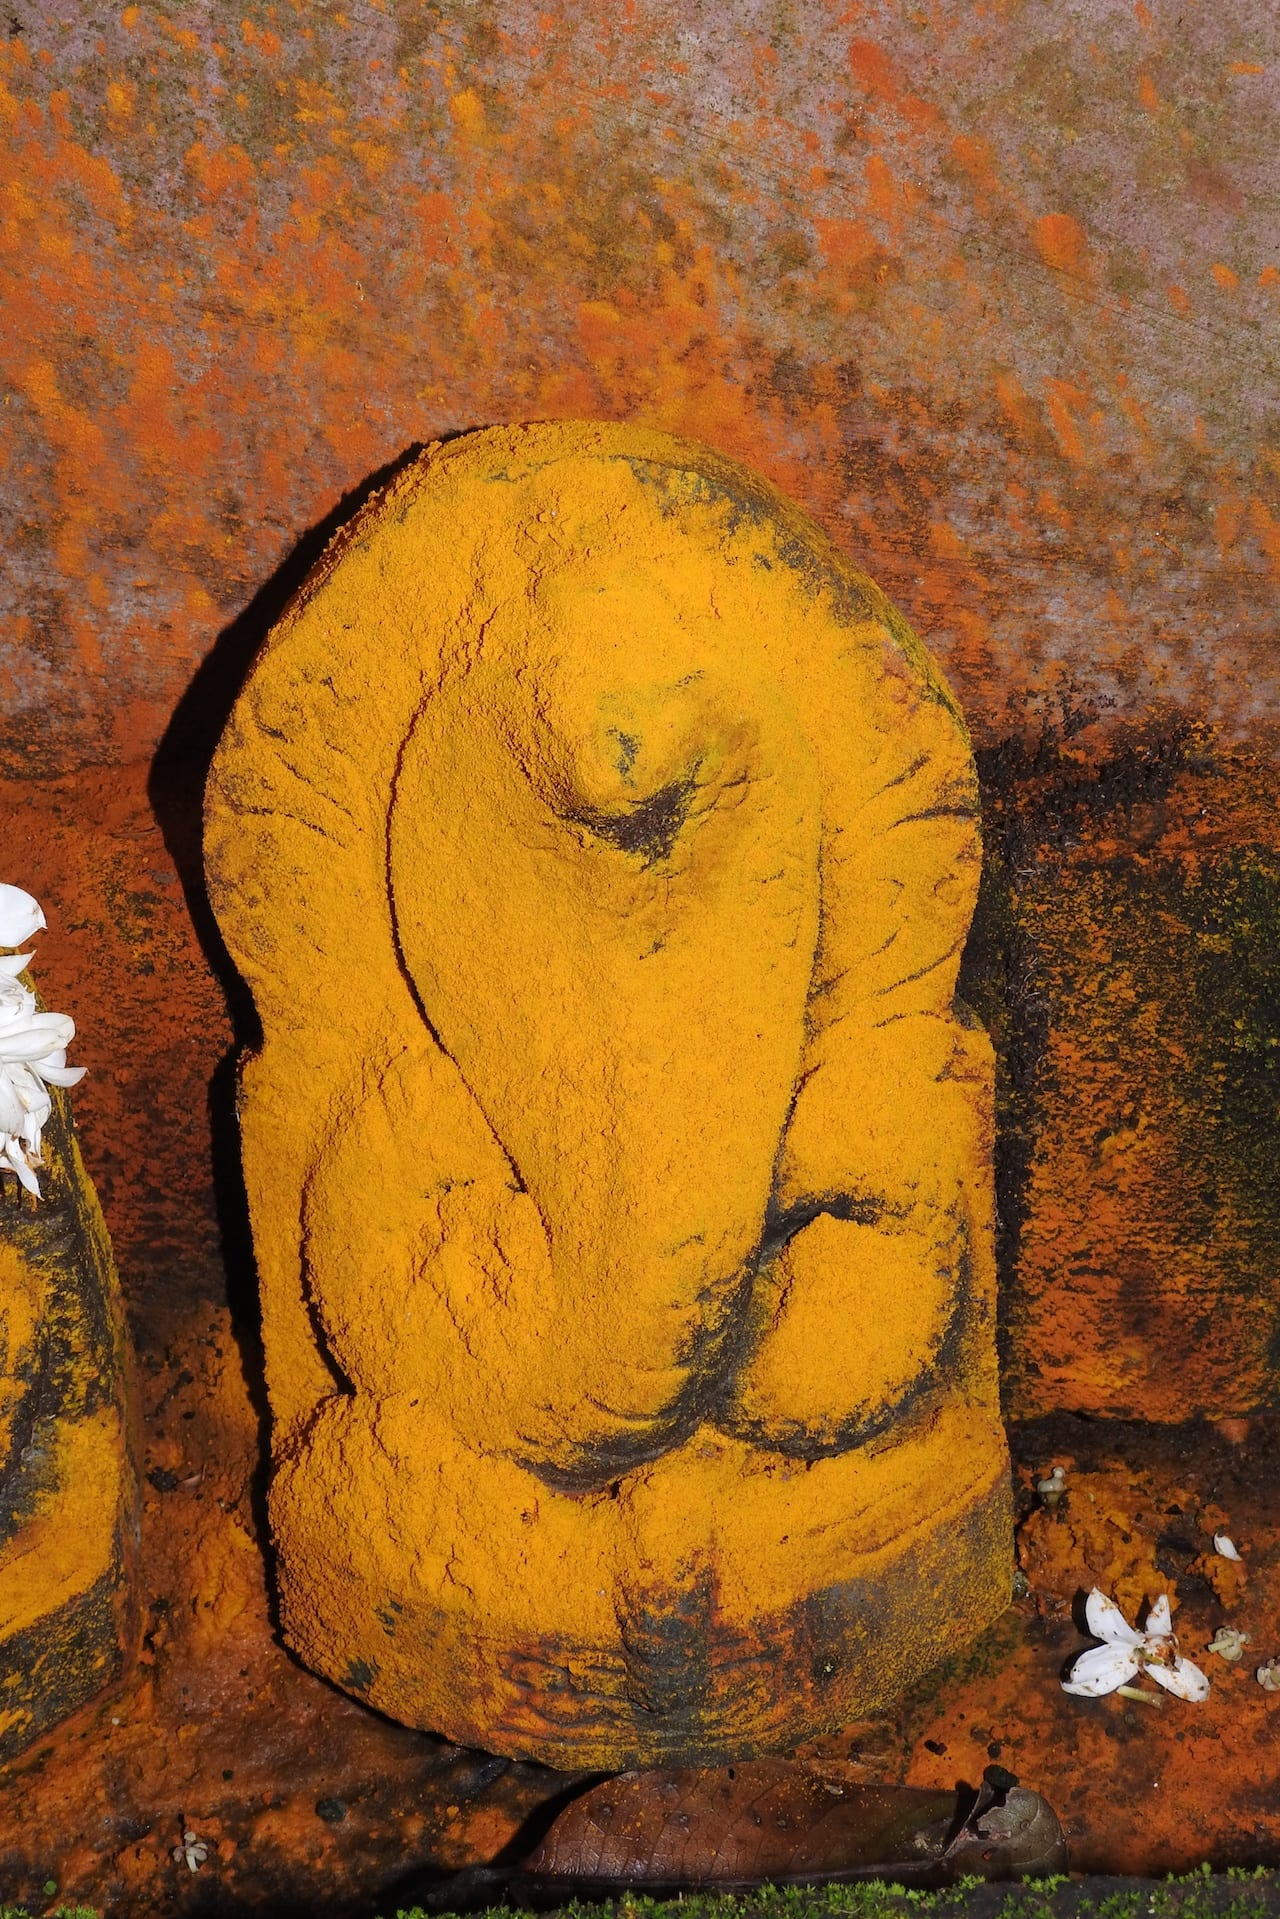 The cobra is revered in Hindu mythology and shrines dedicated to the snake are found across India.